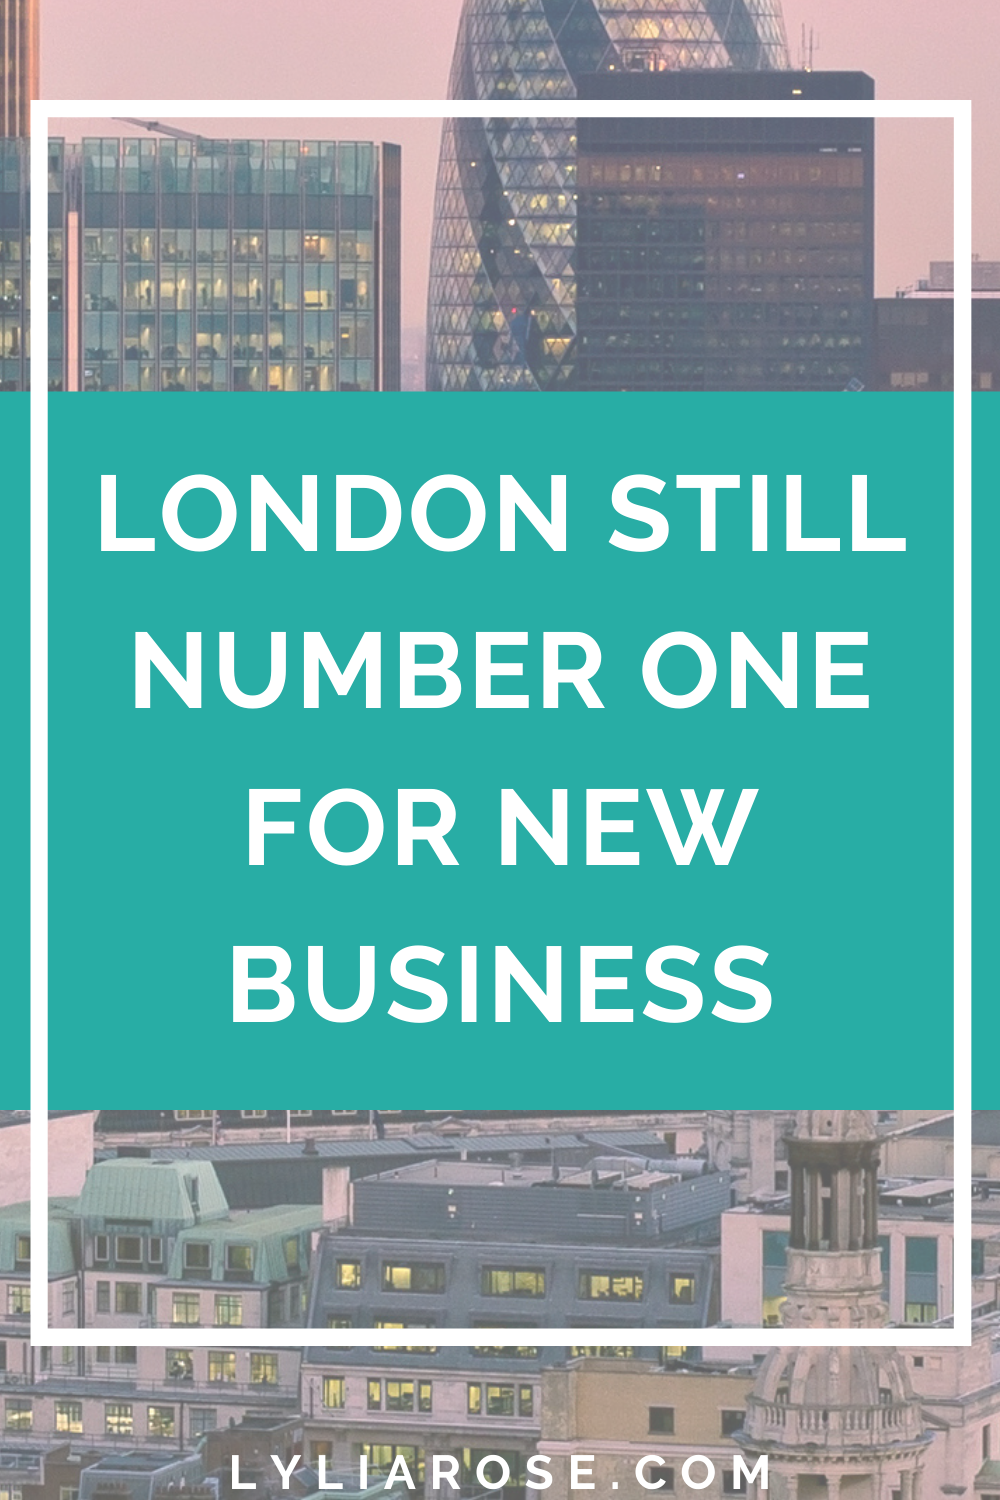 London still number one for new business